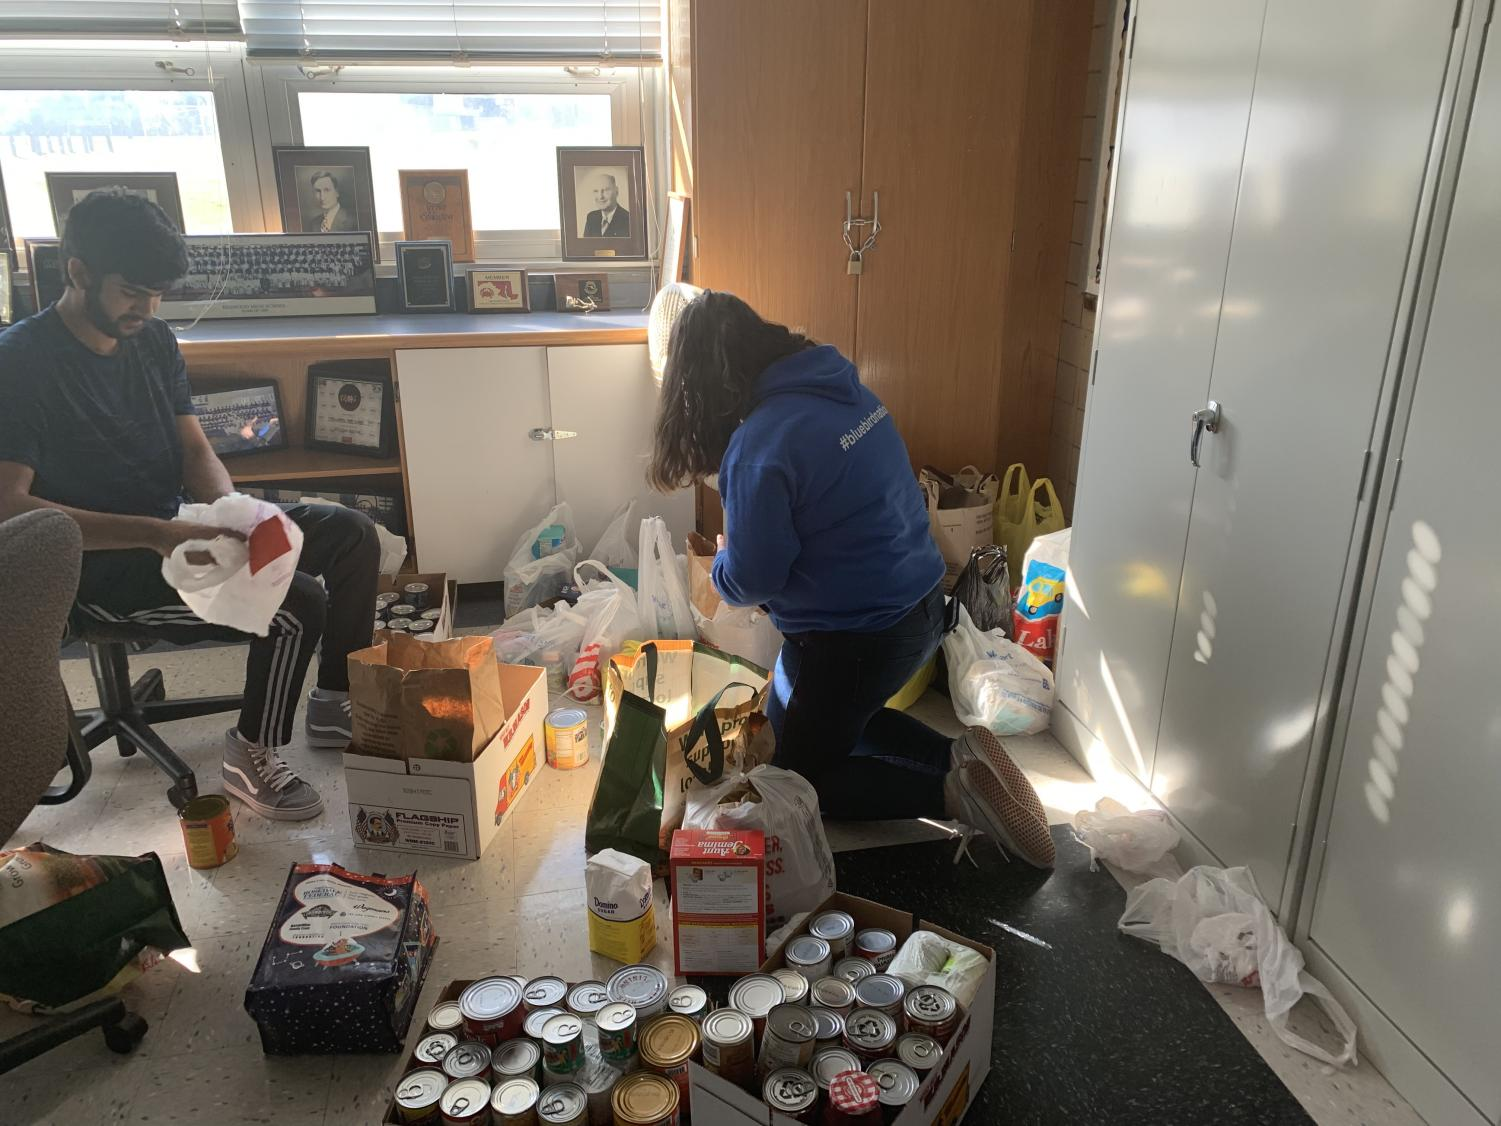 NHS President Shawaiz Abbasi and Vice President Caroline Harris sort and organize all the food donated during the Thanksgiving holiday food drive.